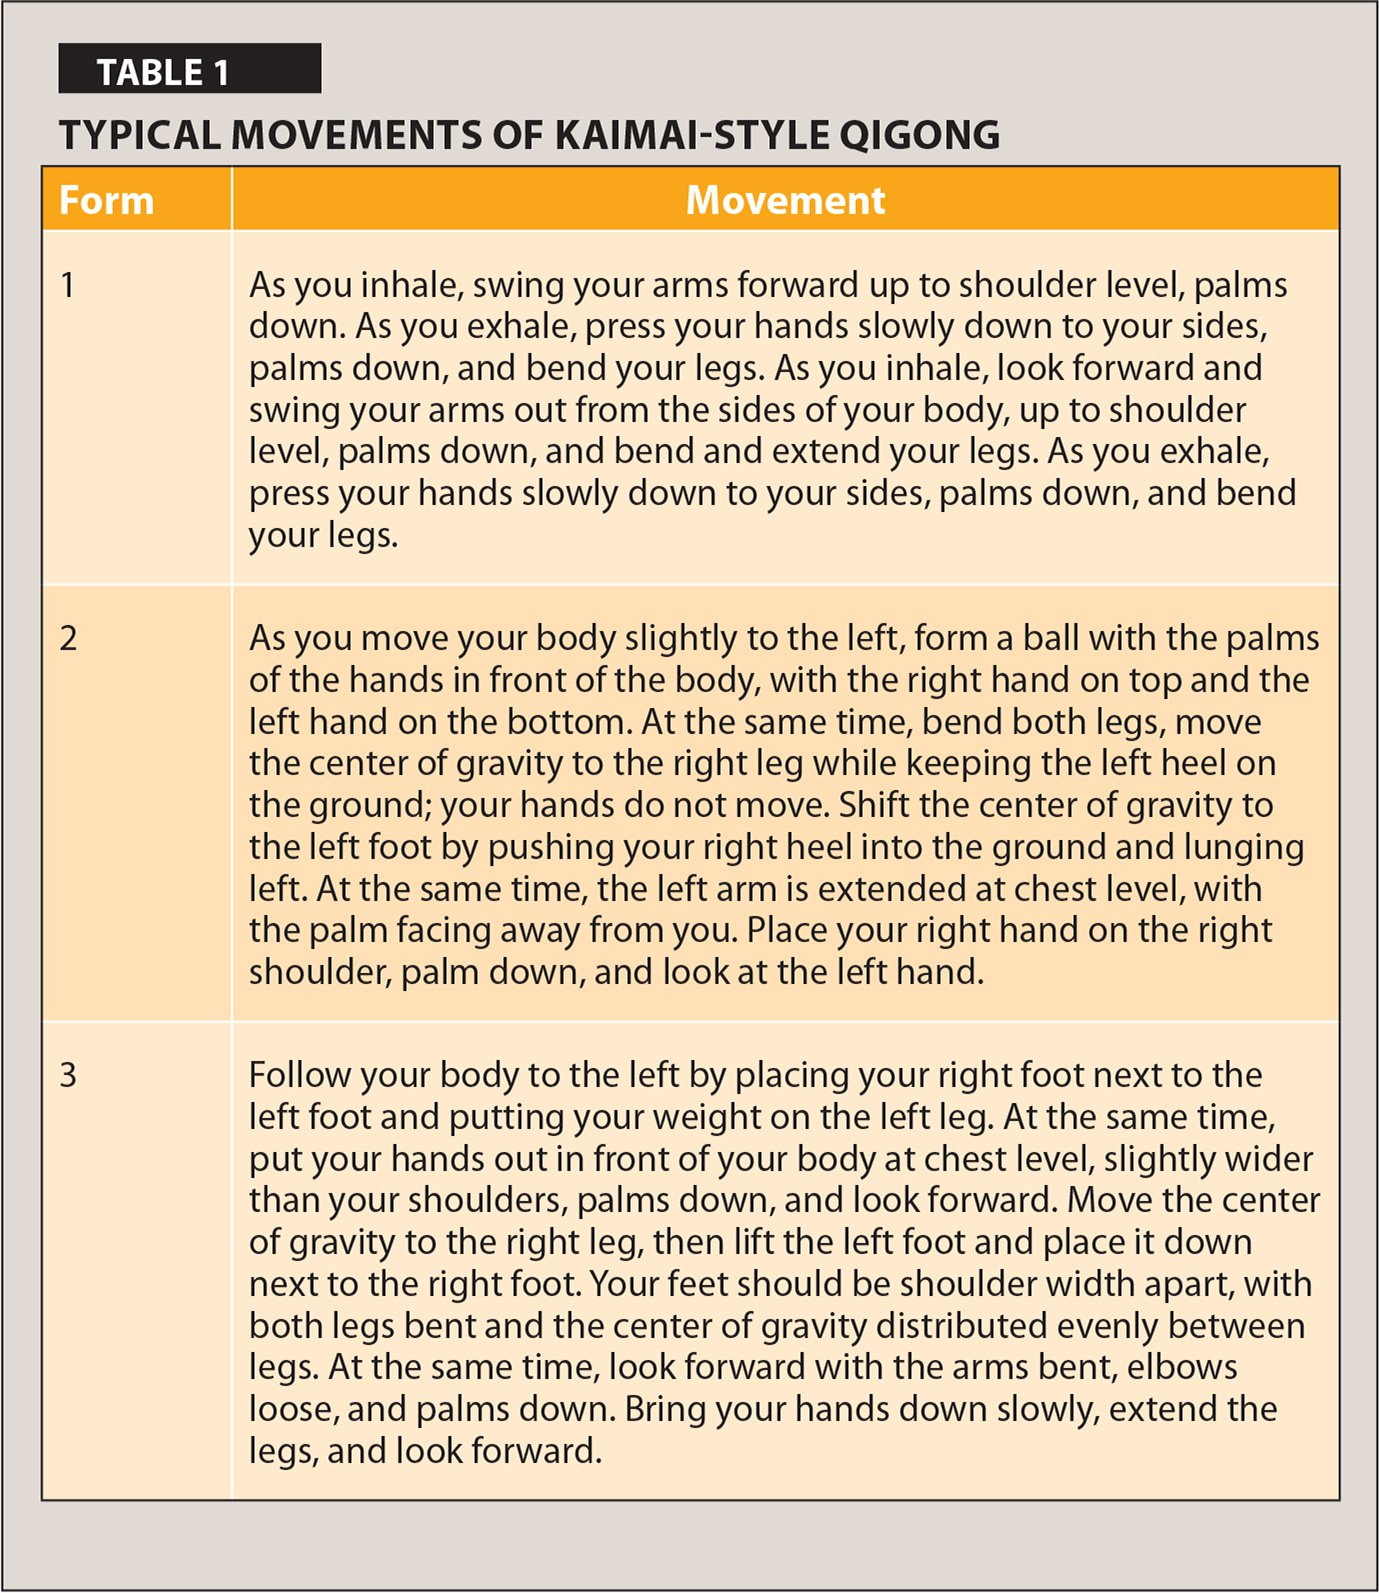 Typical Movements of Kaimai-Style Qigong